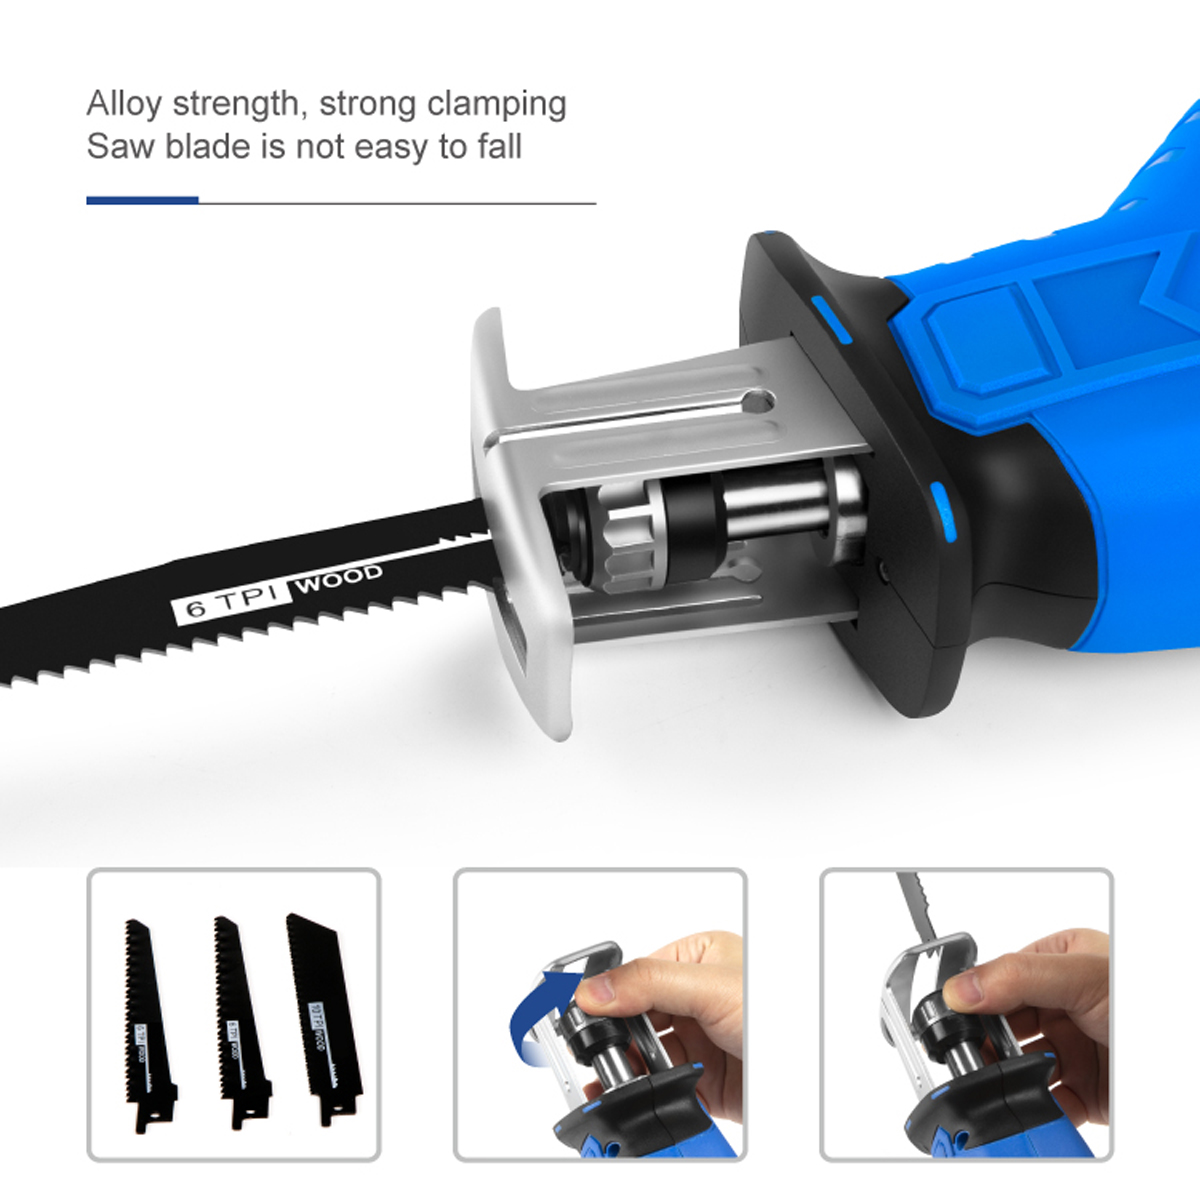 Tools : Cordless Reciprocating Saw 21V Chainsaw Cutting Wood Metal PVC Pipe Adjustable Speed with Saw Blades Power Tool By PROSTORMER